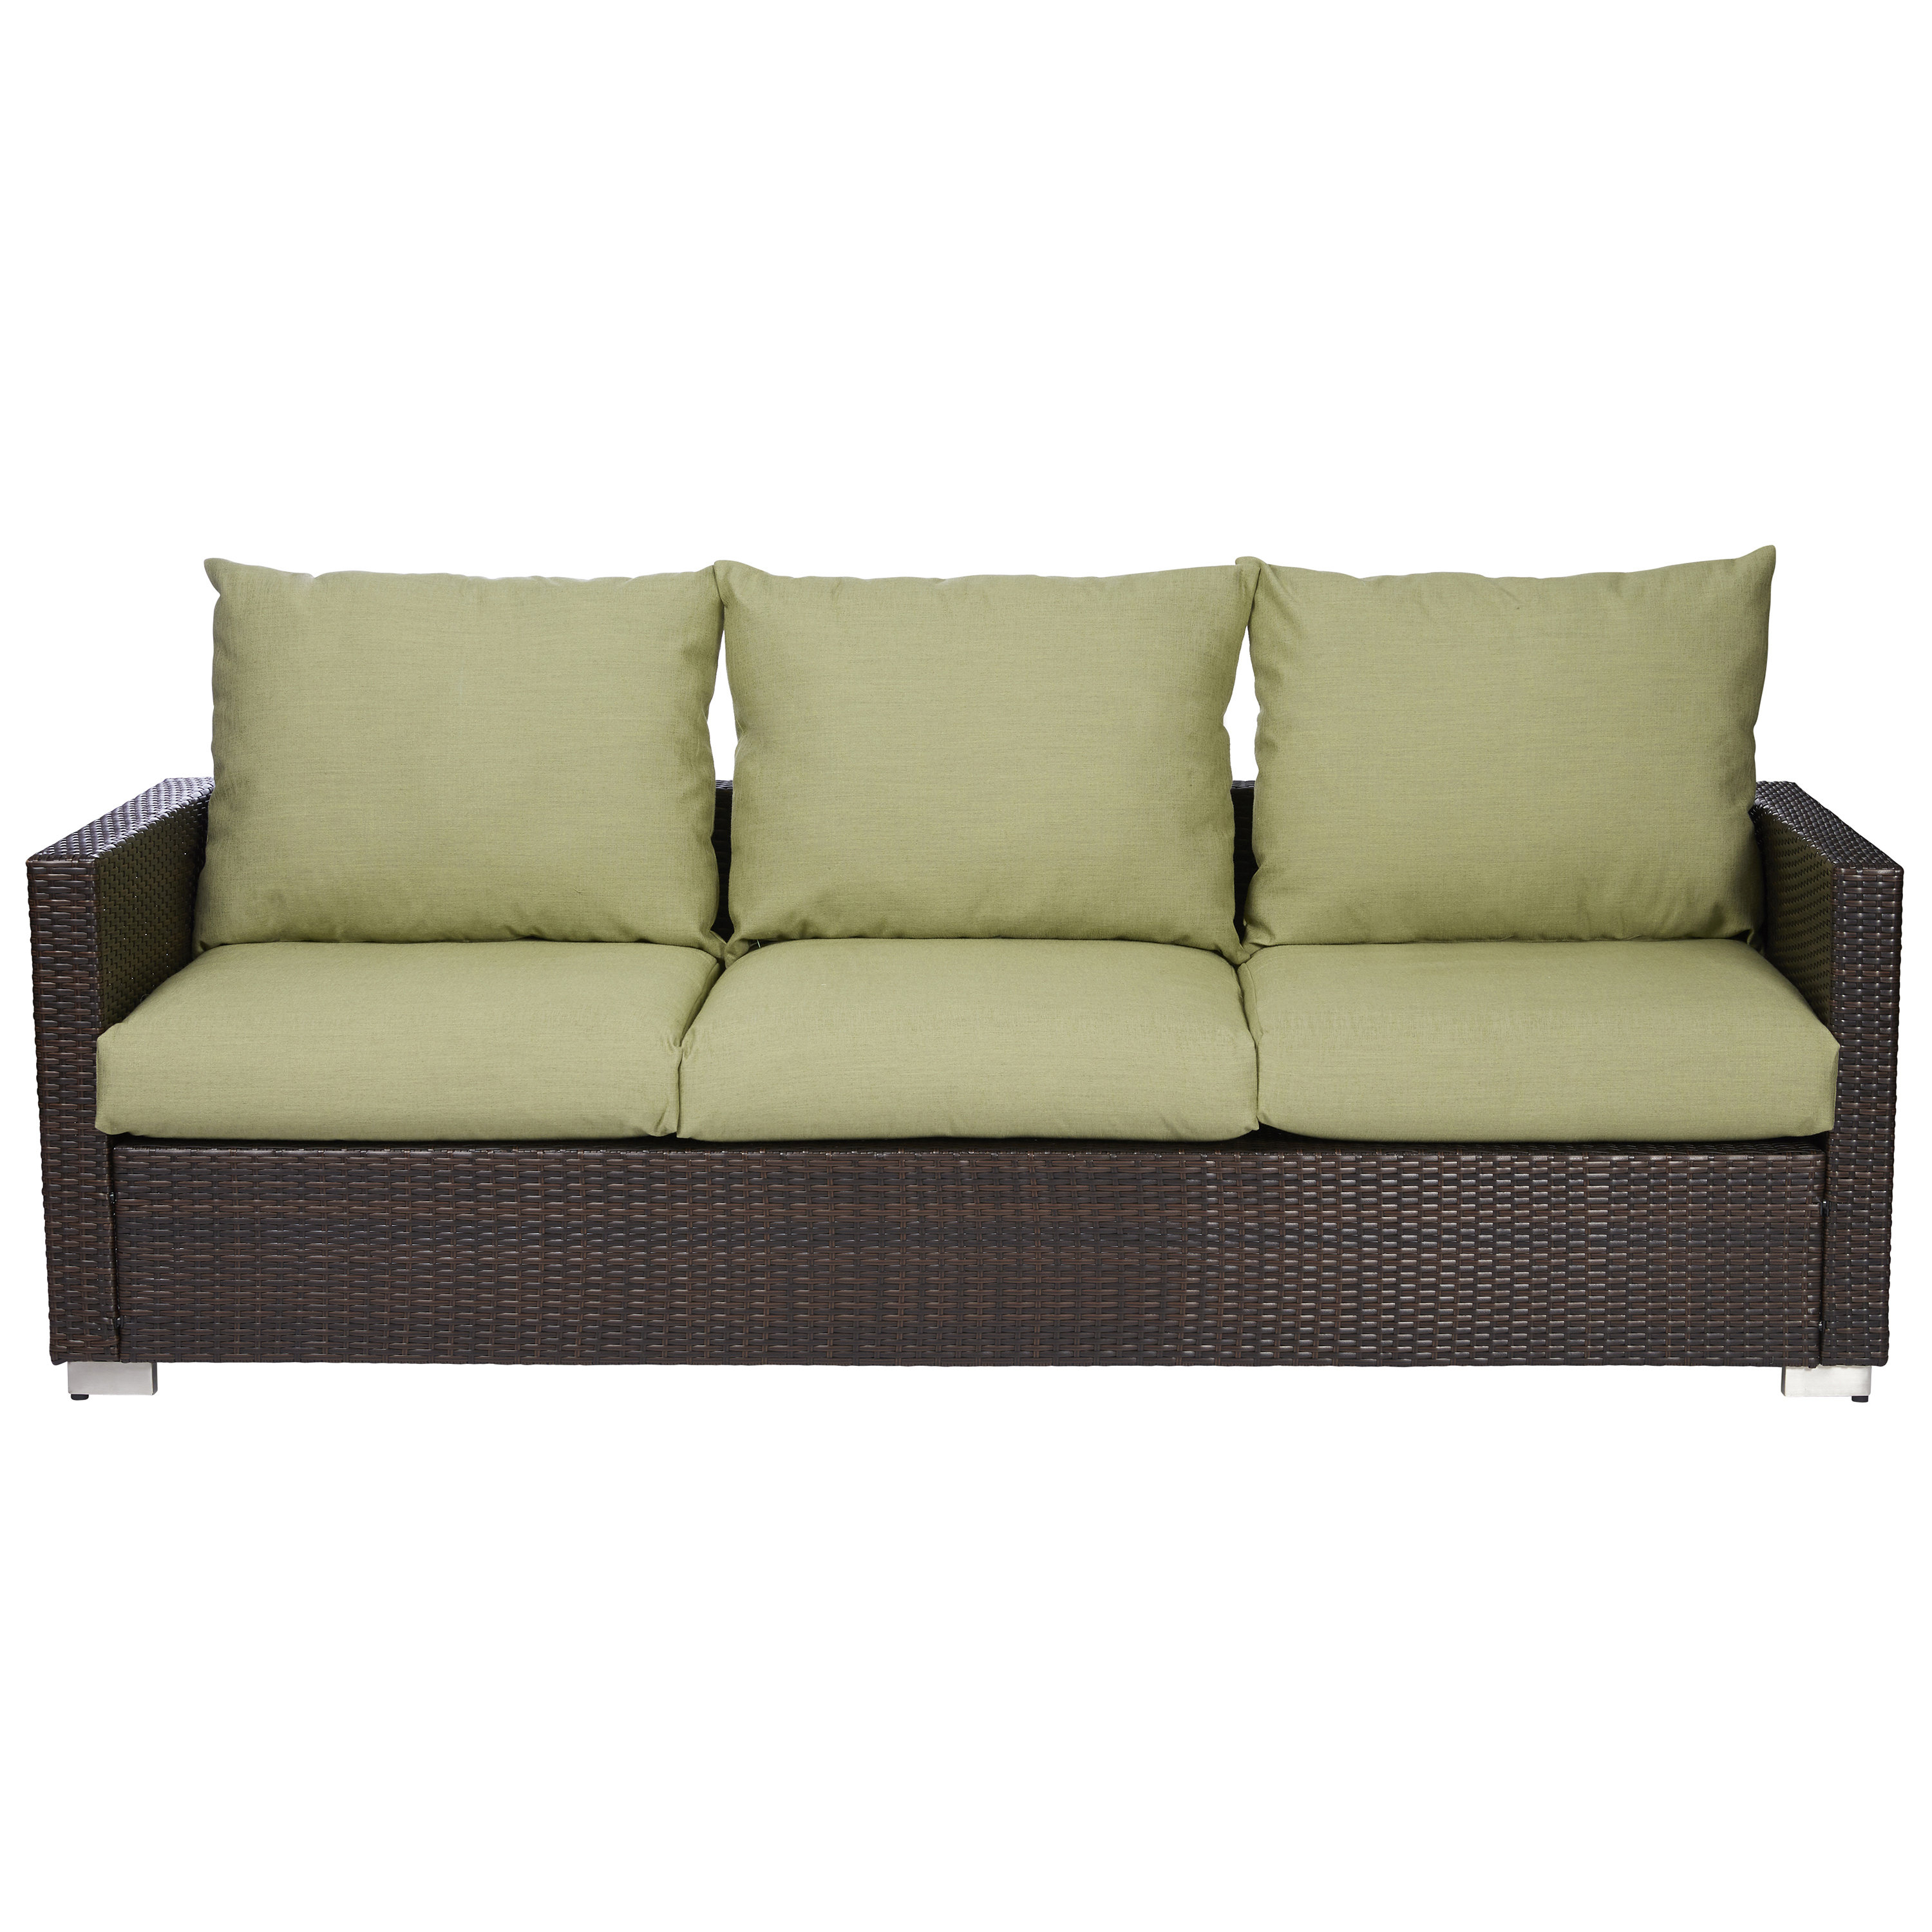 Most Recent Mcmanis Patio Sofa With Cushion In Hursey Patio Sofas (View 13 of 20)